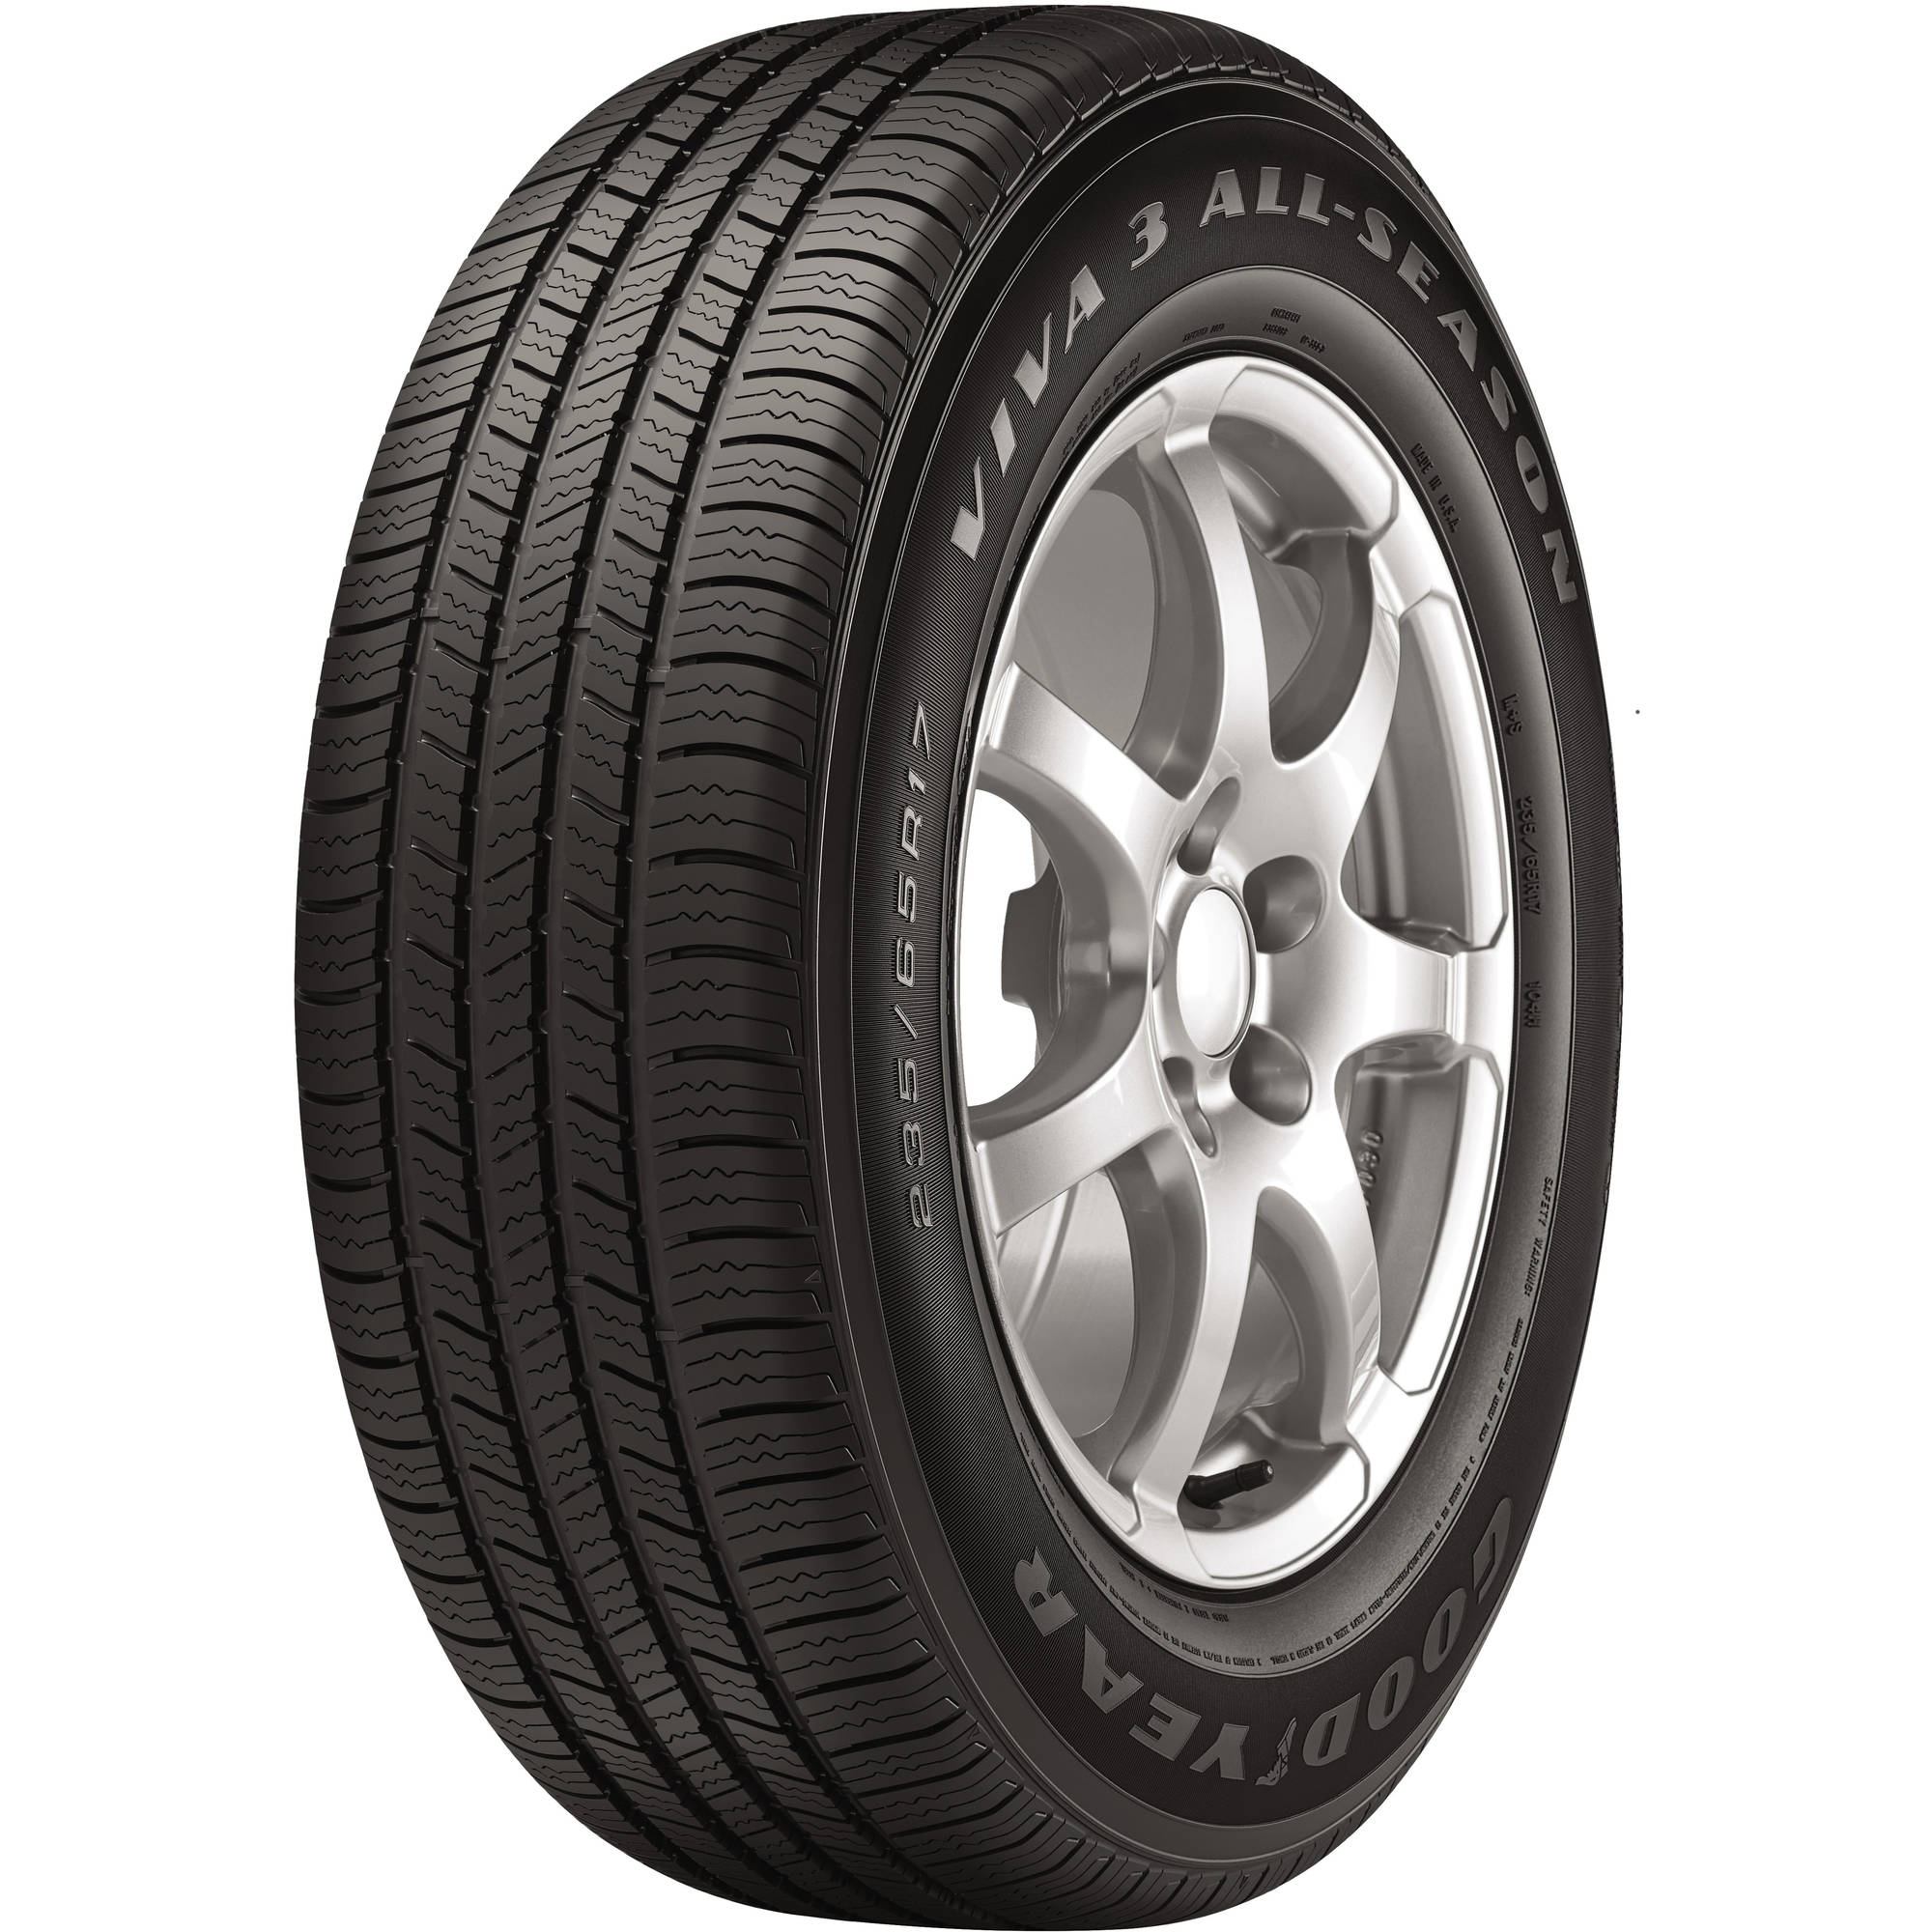 Goodyear Viva 3 All-Season Tire 215/60R17 96T